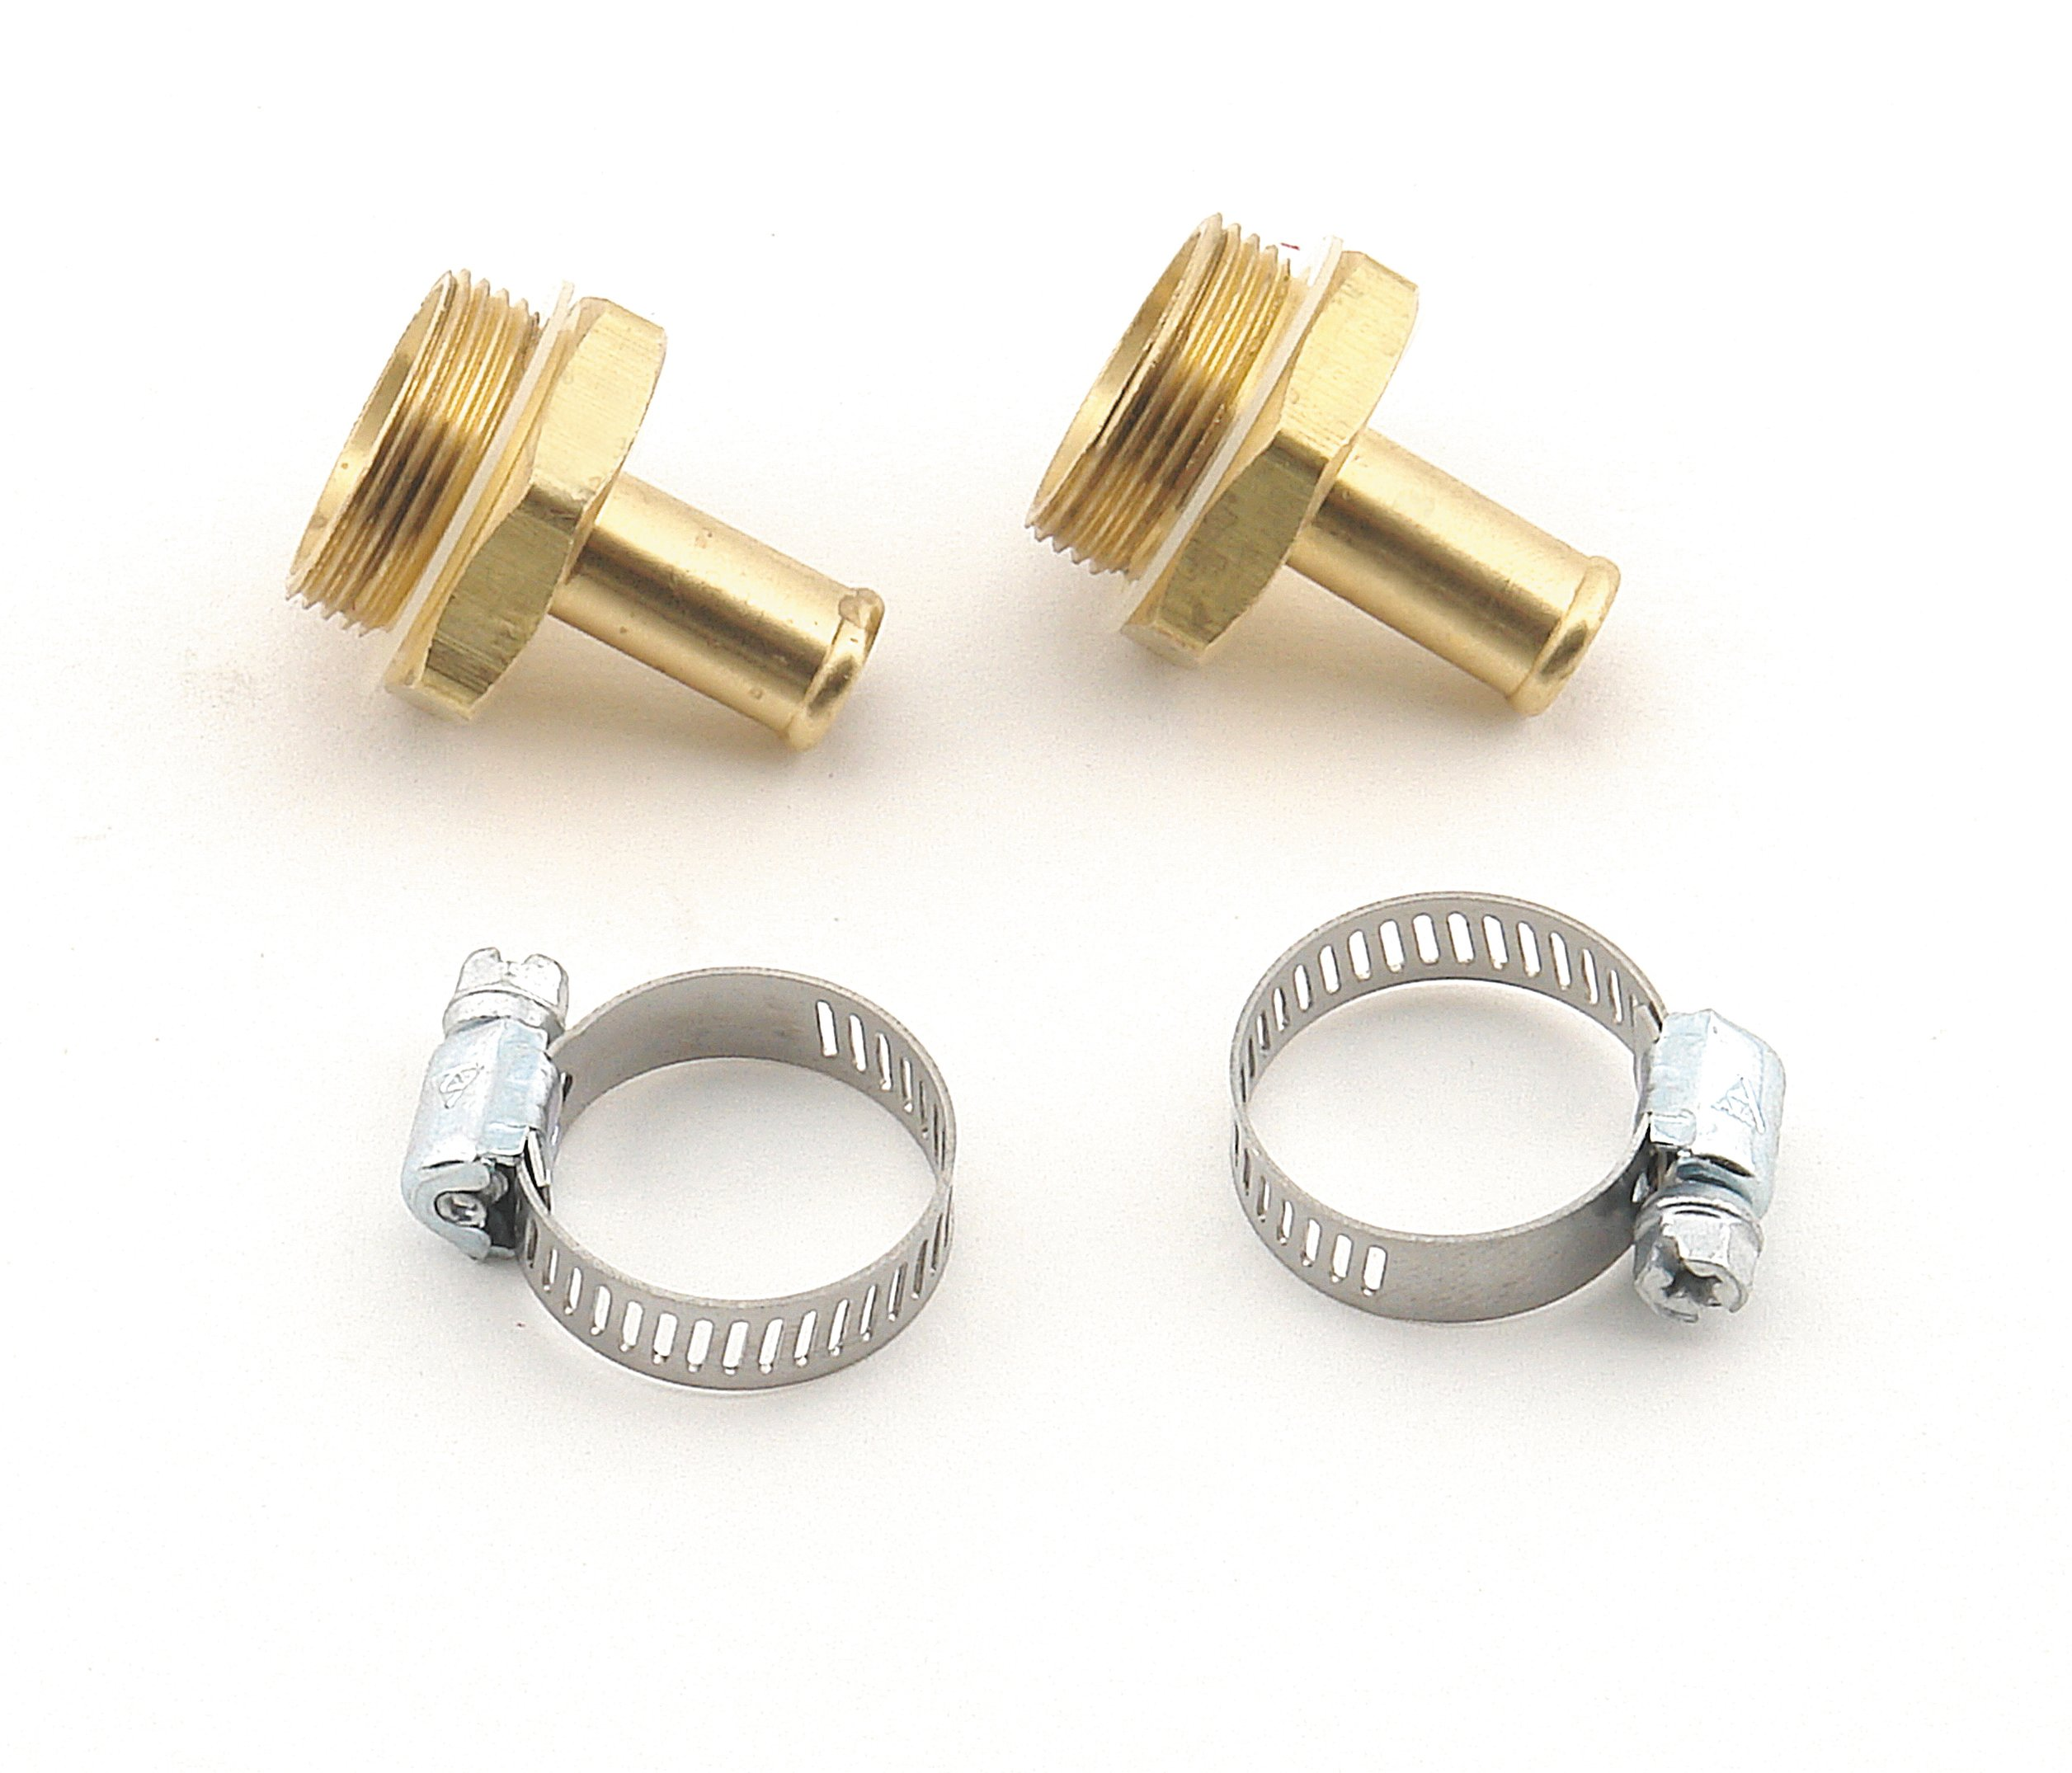 Mr gasket carburetor inlet fittings quot male